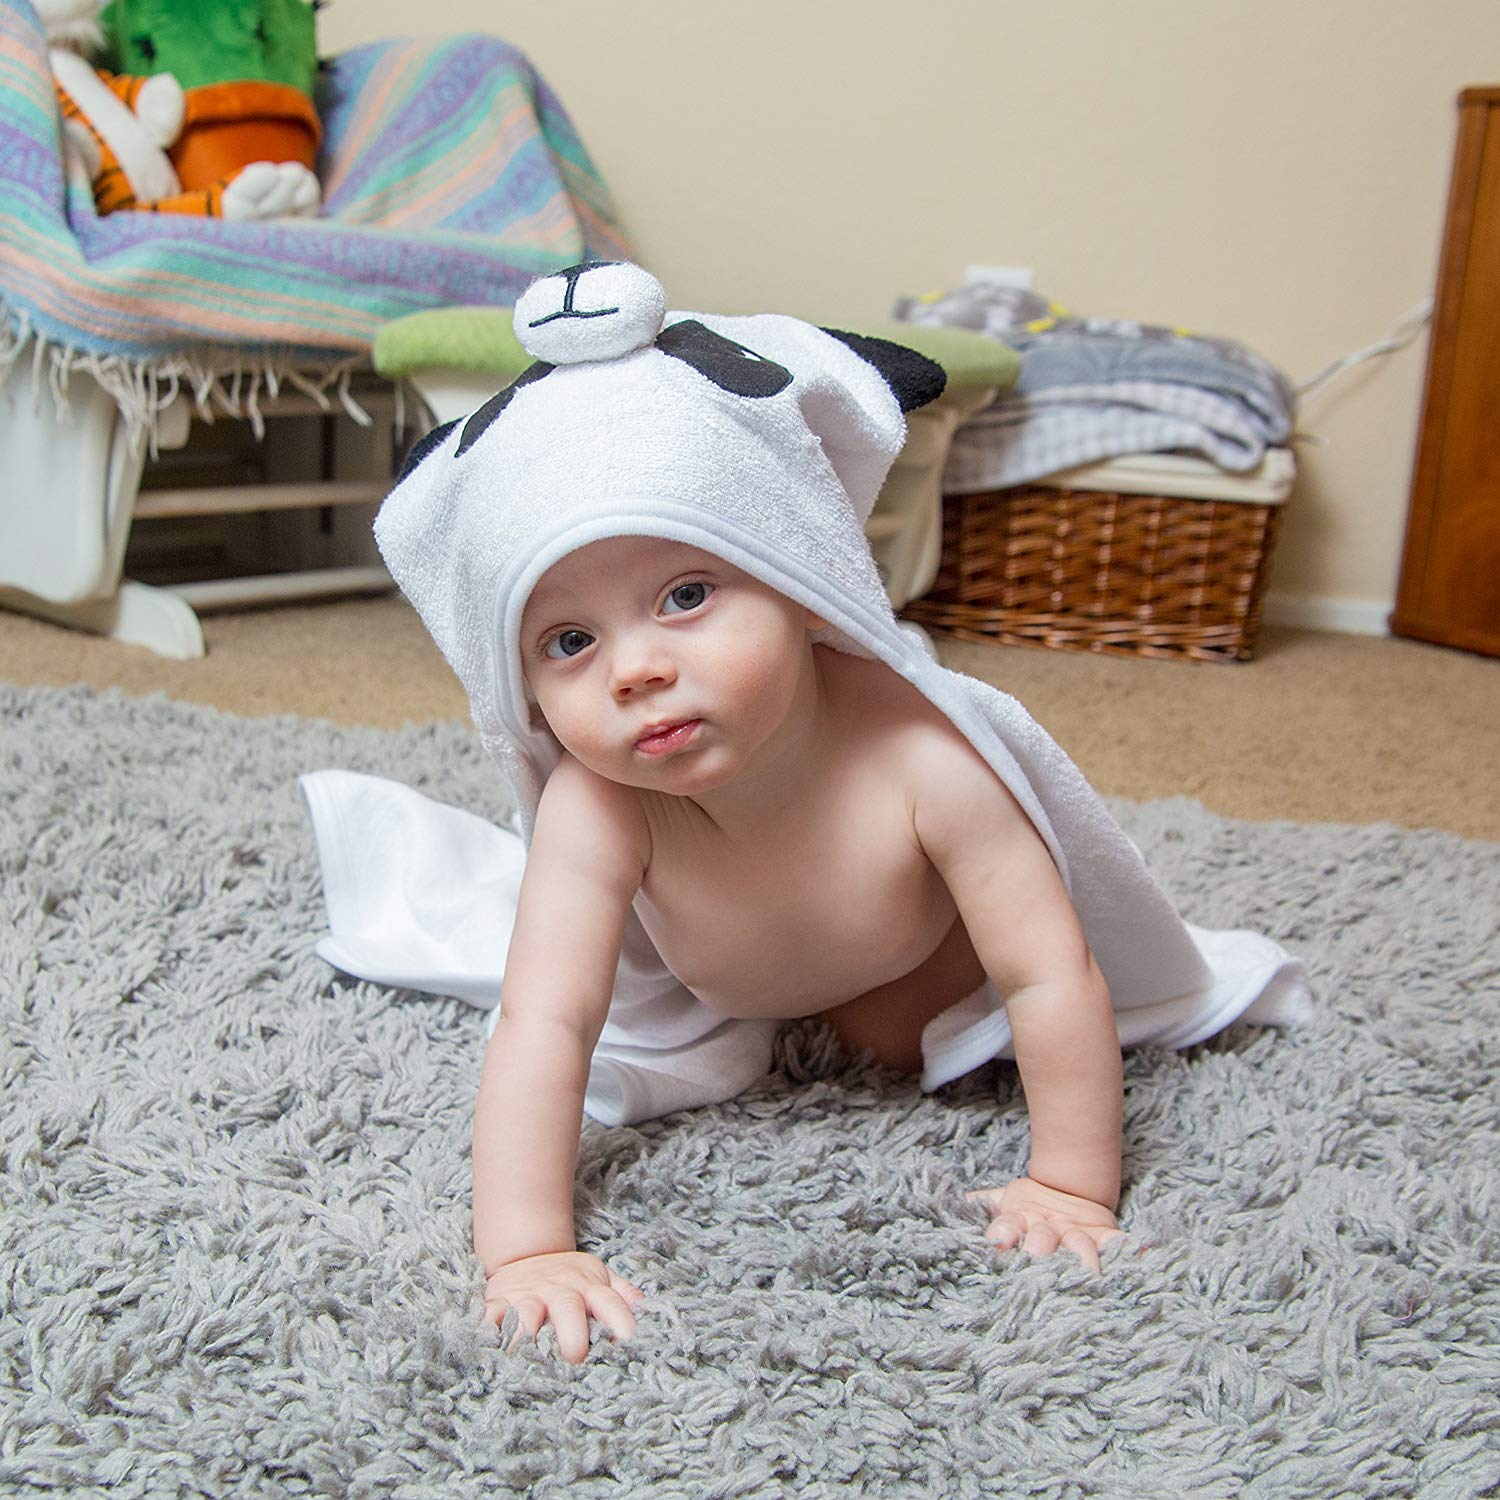 Bamboo Panda Hooded Baby Towel 100 Organic Unisex Towel Highly Absorbent And Super Soft Bath Towel For The Pool An B071G2C4Z9 4